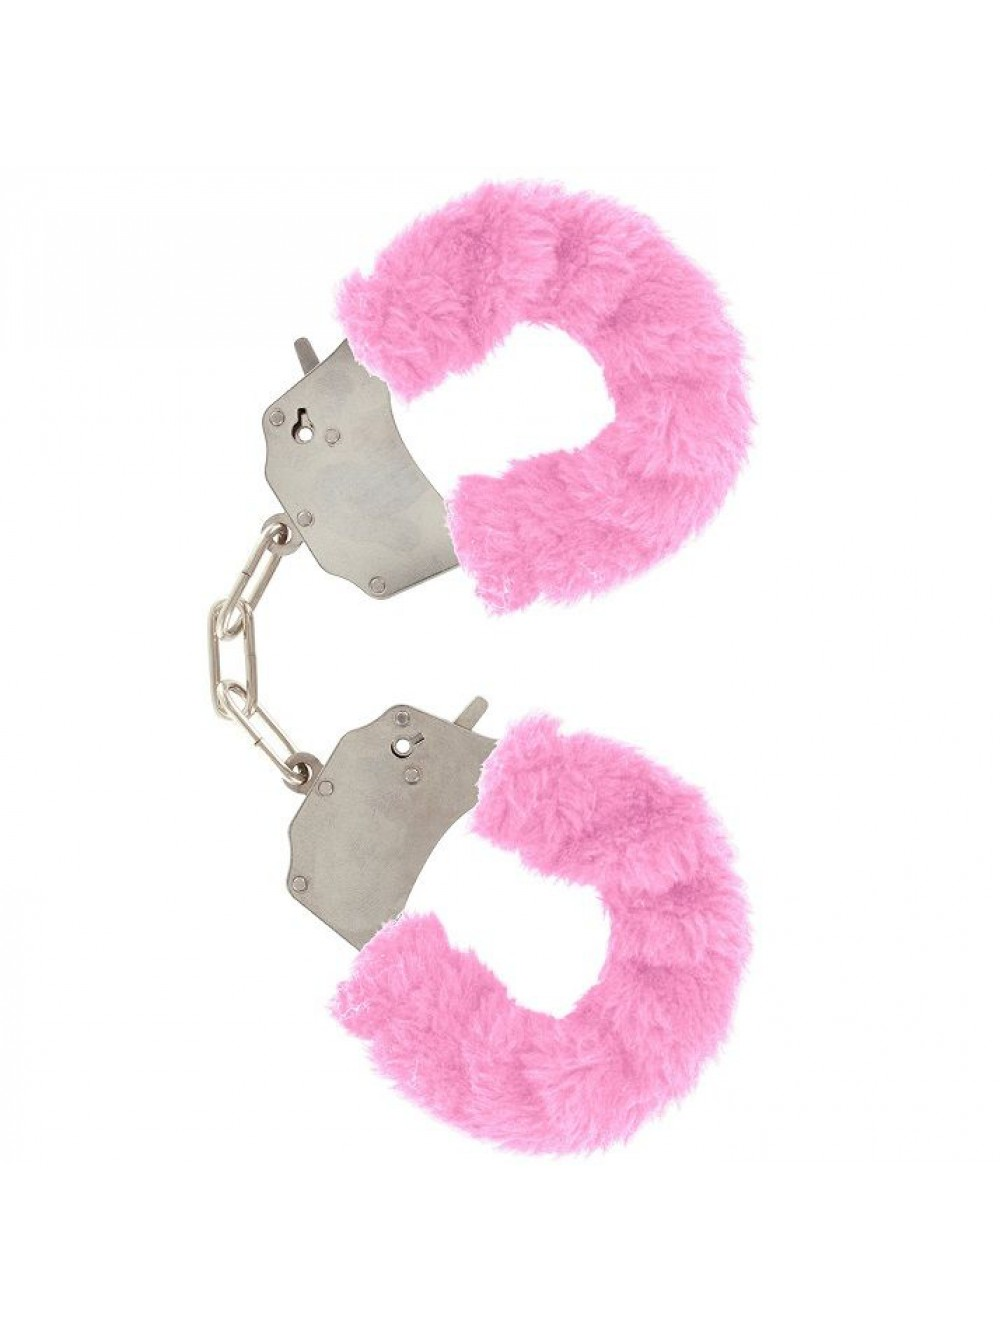 FURRY FUN CUFFS LECHEROUS PINK